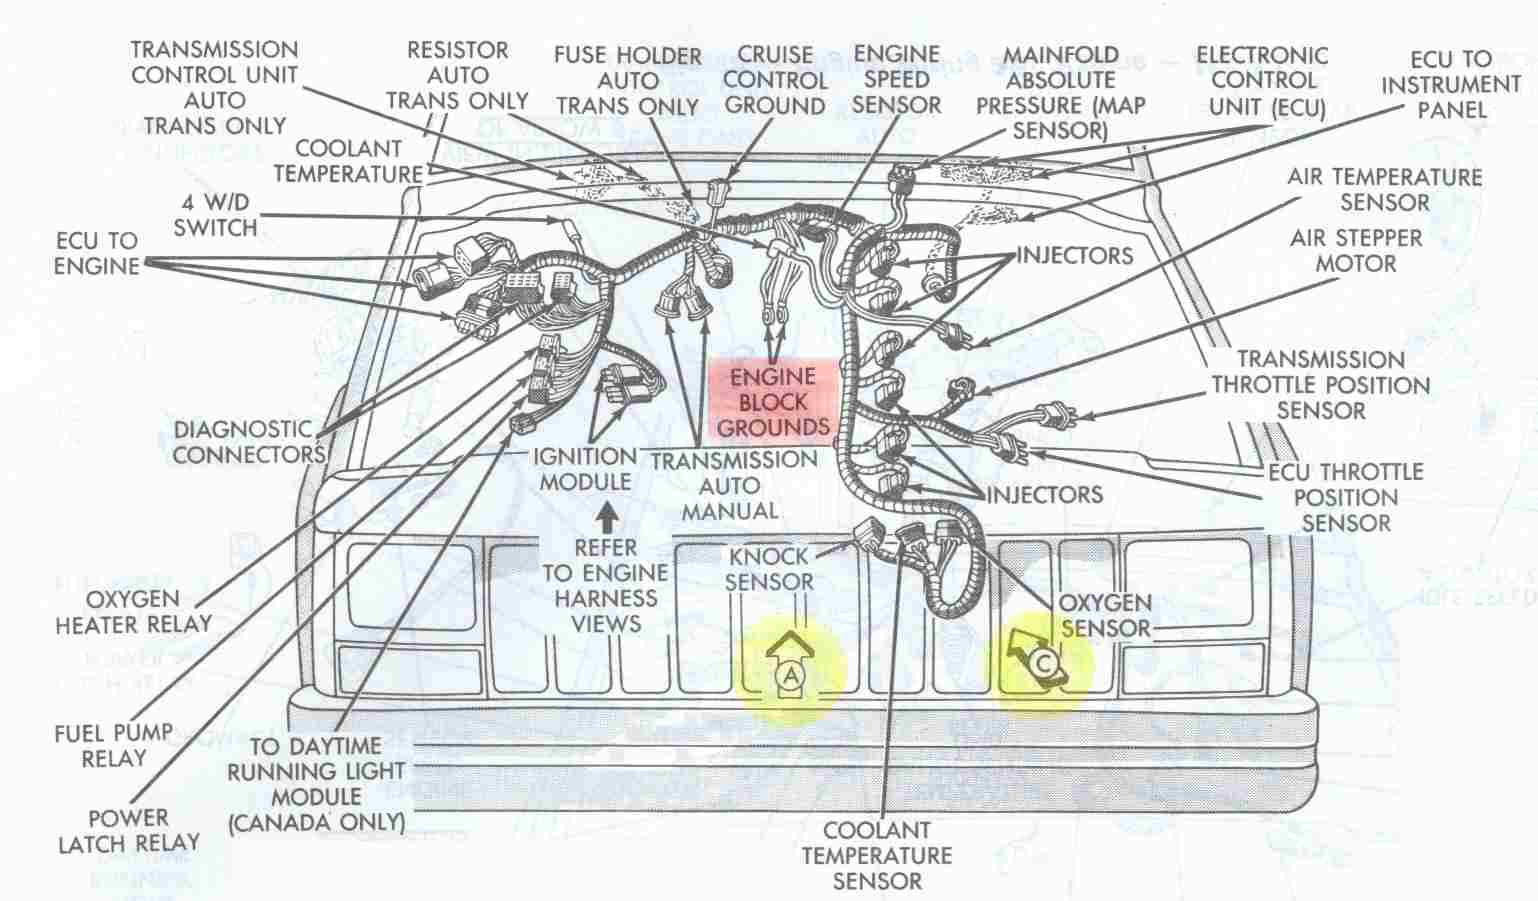 hight resolution of jeep wrangler engine wiring harness diagram wiring diagram post 2005 jeep wrangler engine diagram